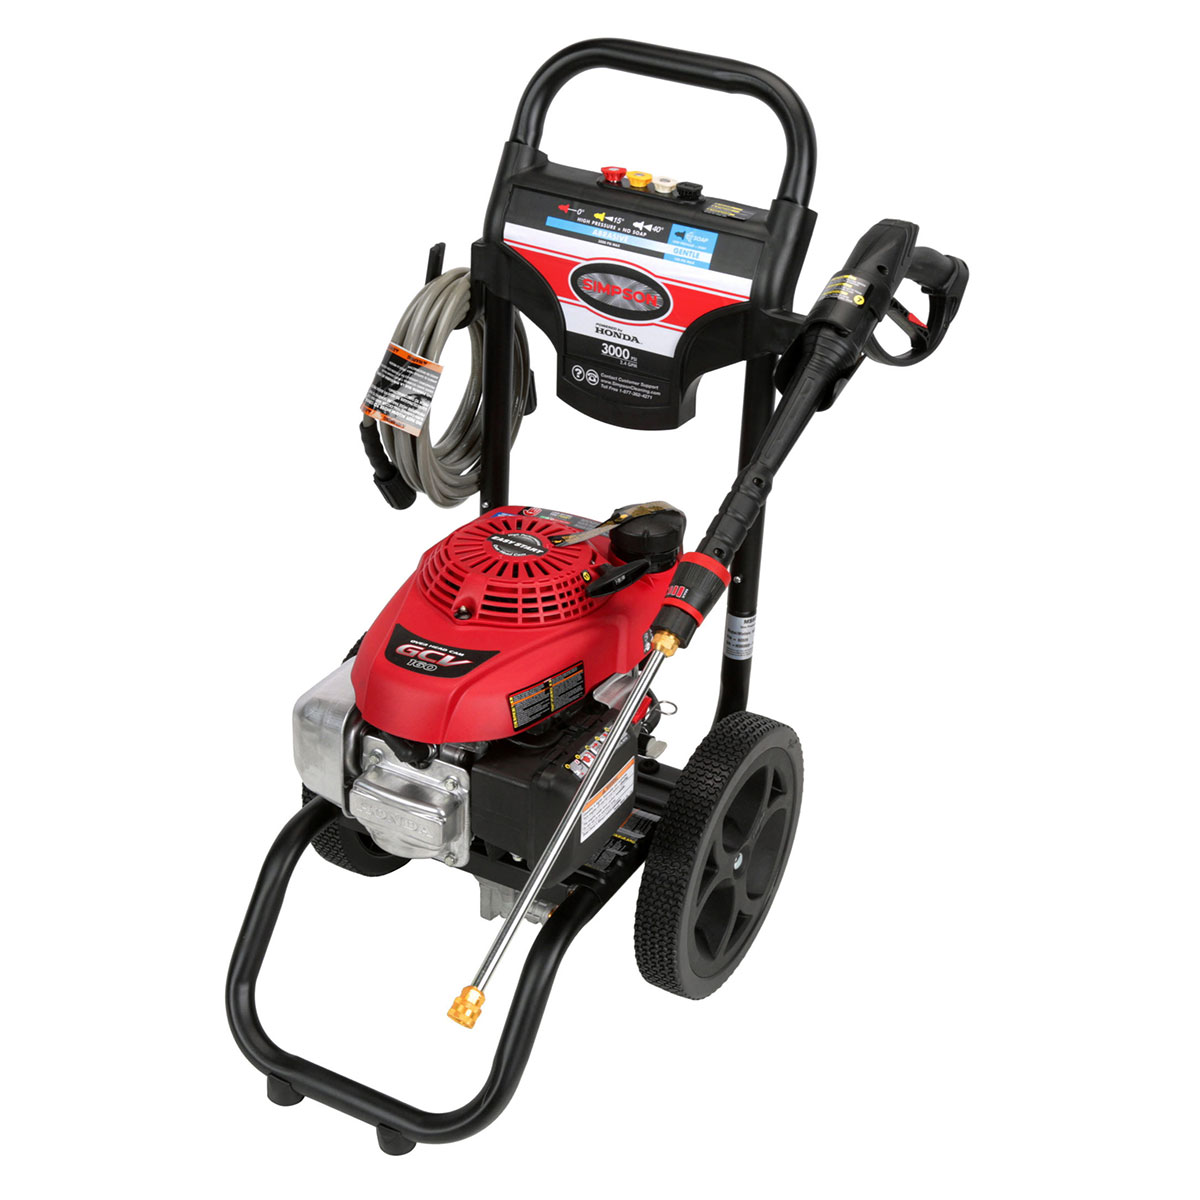 3000 PSI Megashot Premium Residential Series Pressure Washer with a Honda GCV160 engine and a 25' hose - MS60809-S